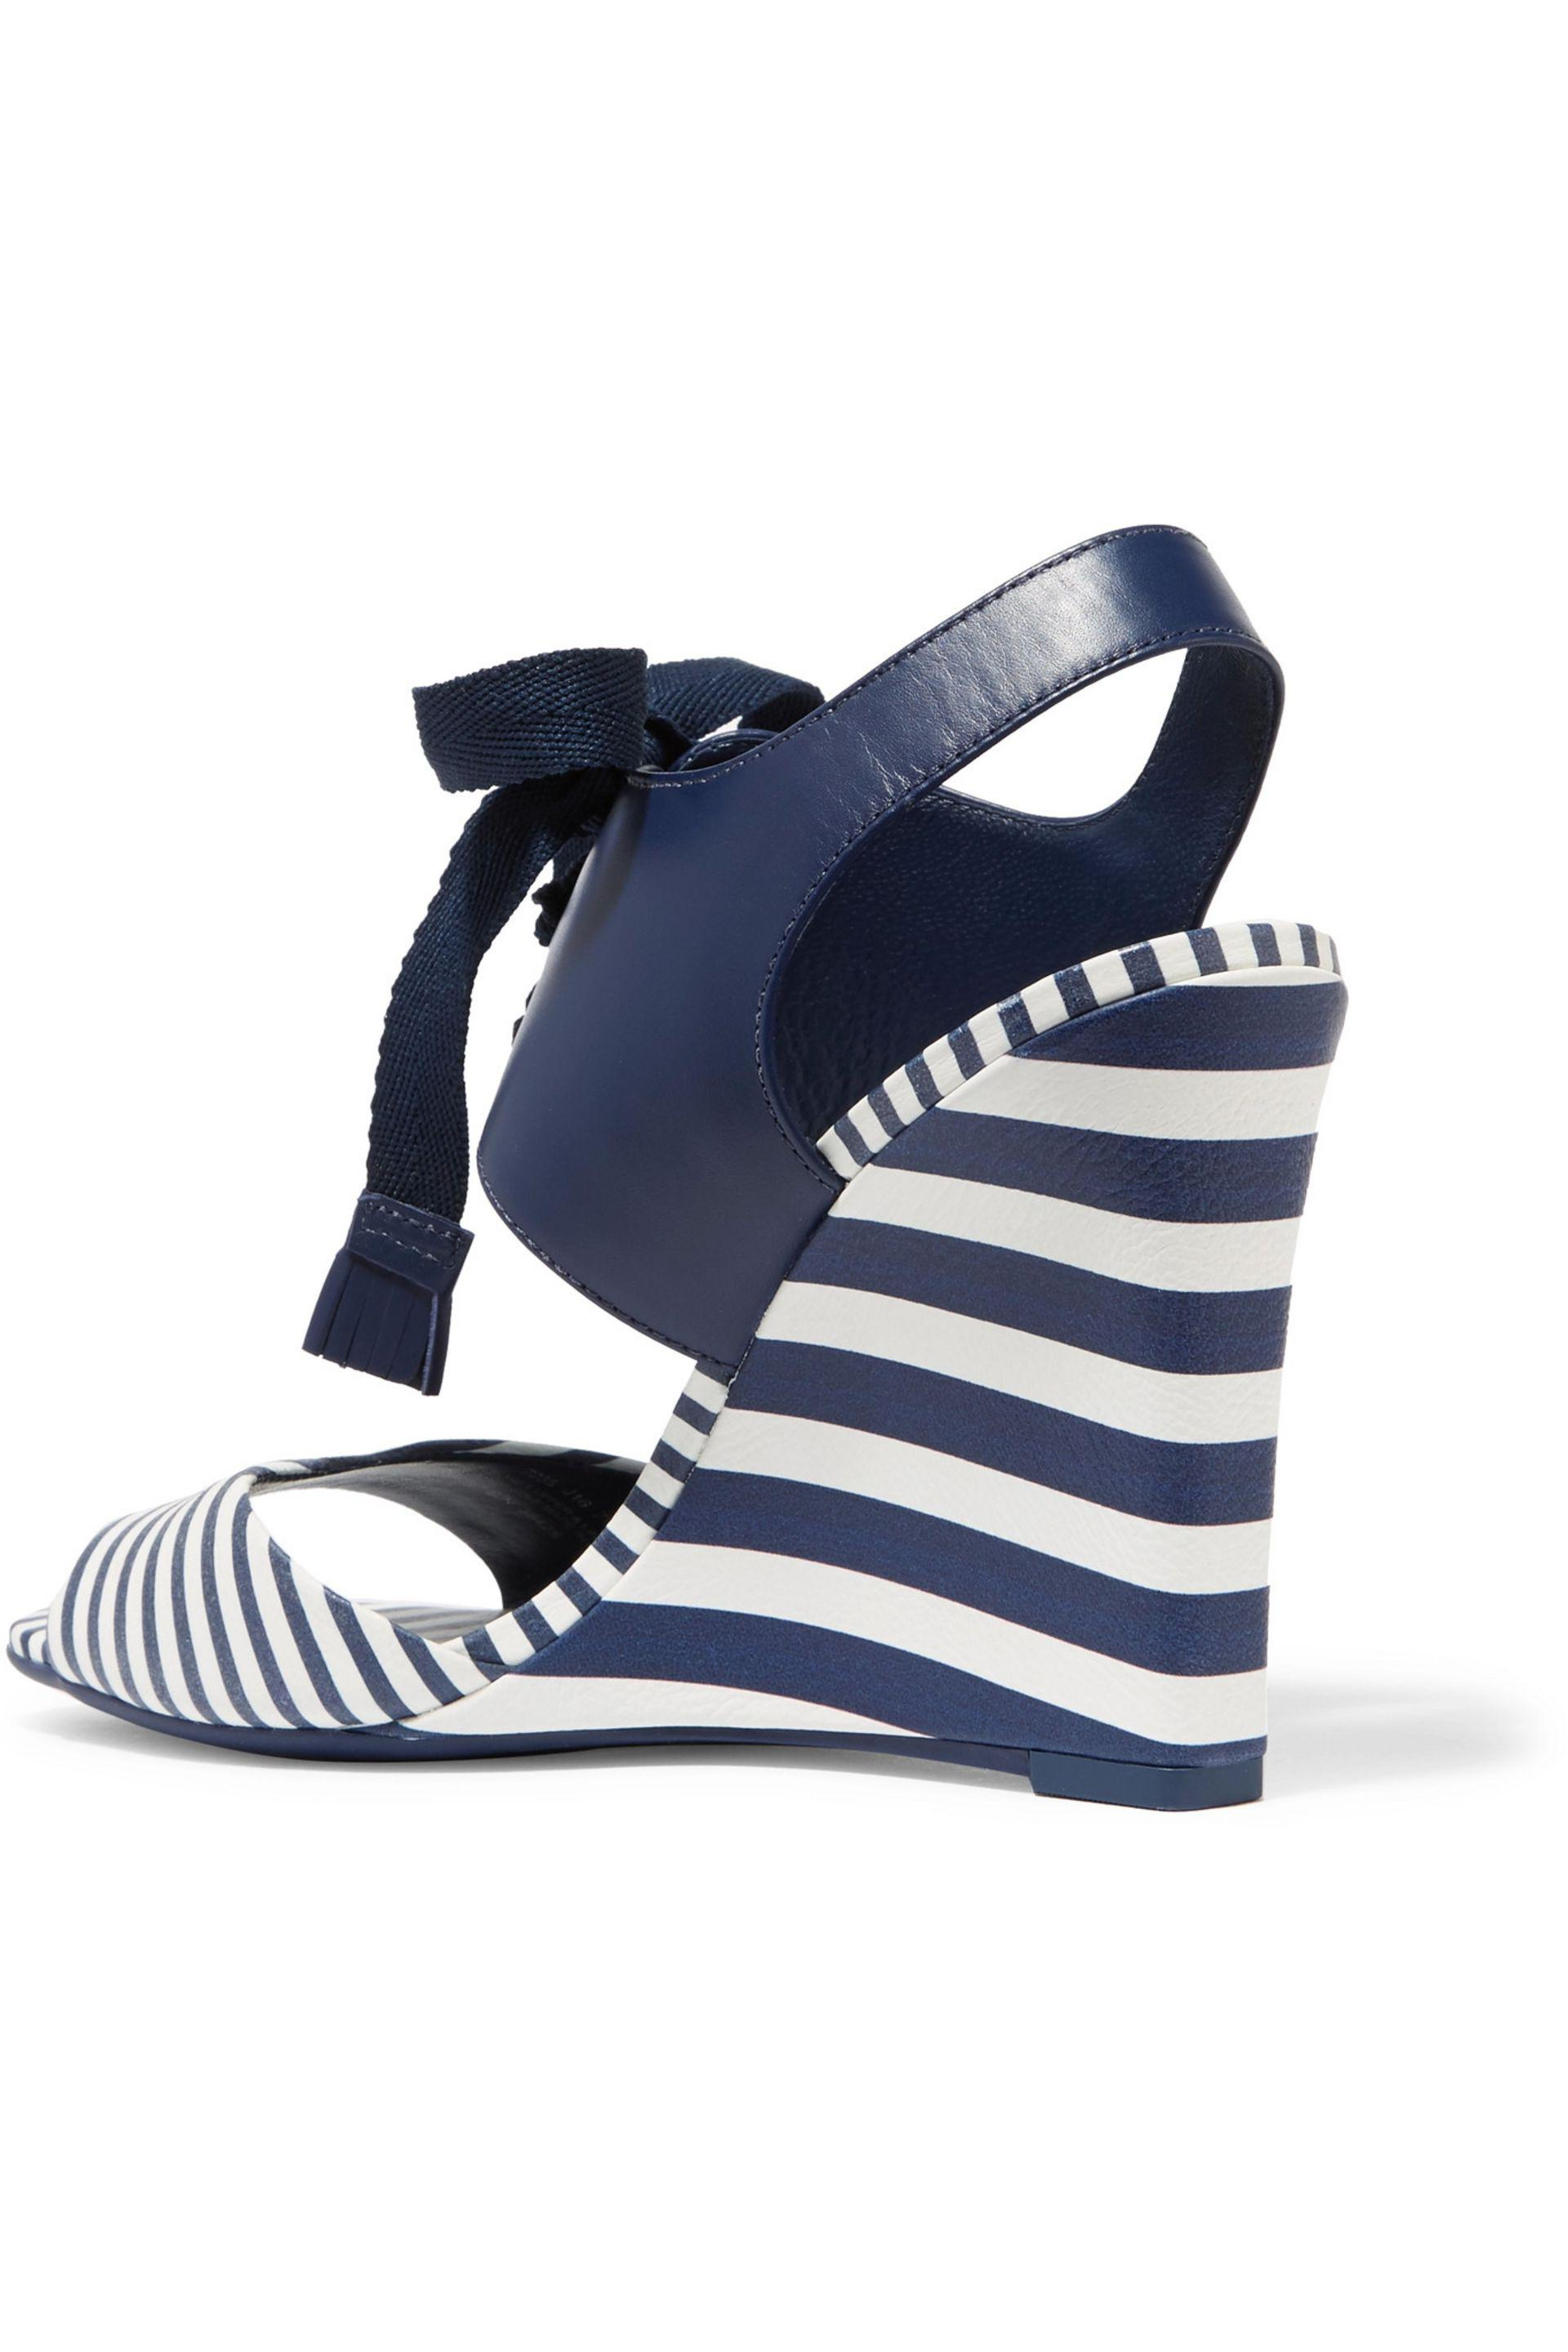 cdc93ba6044c Lyst - Tory Burch Maritime Lace-up Striped Leather Wedge Sandals in Blue